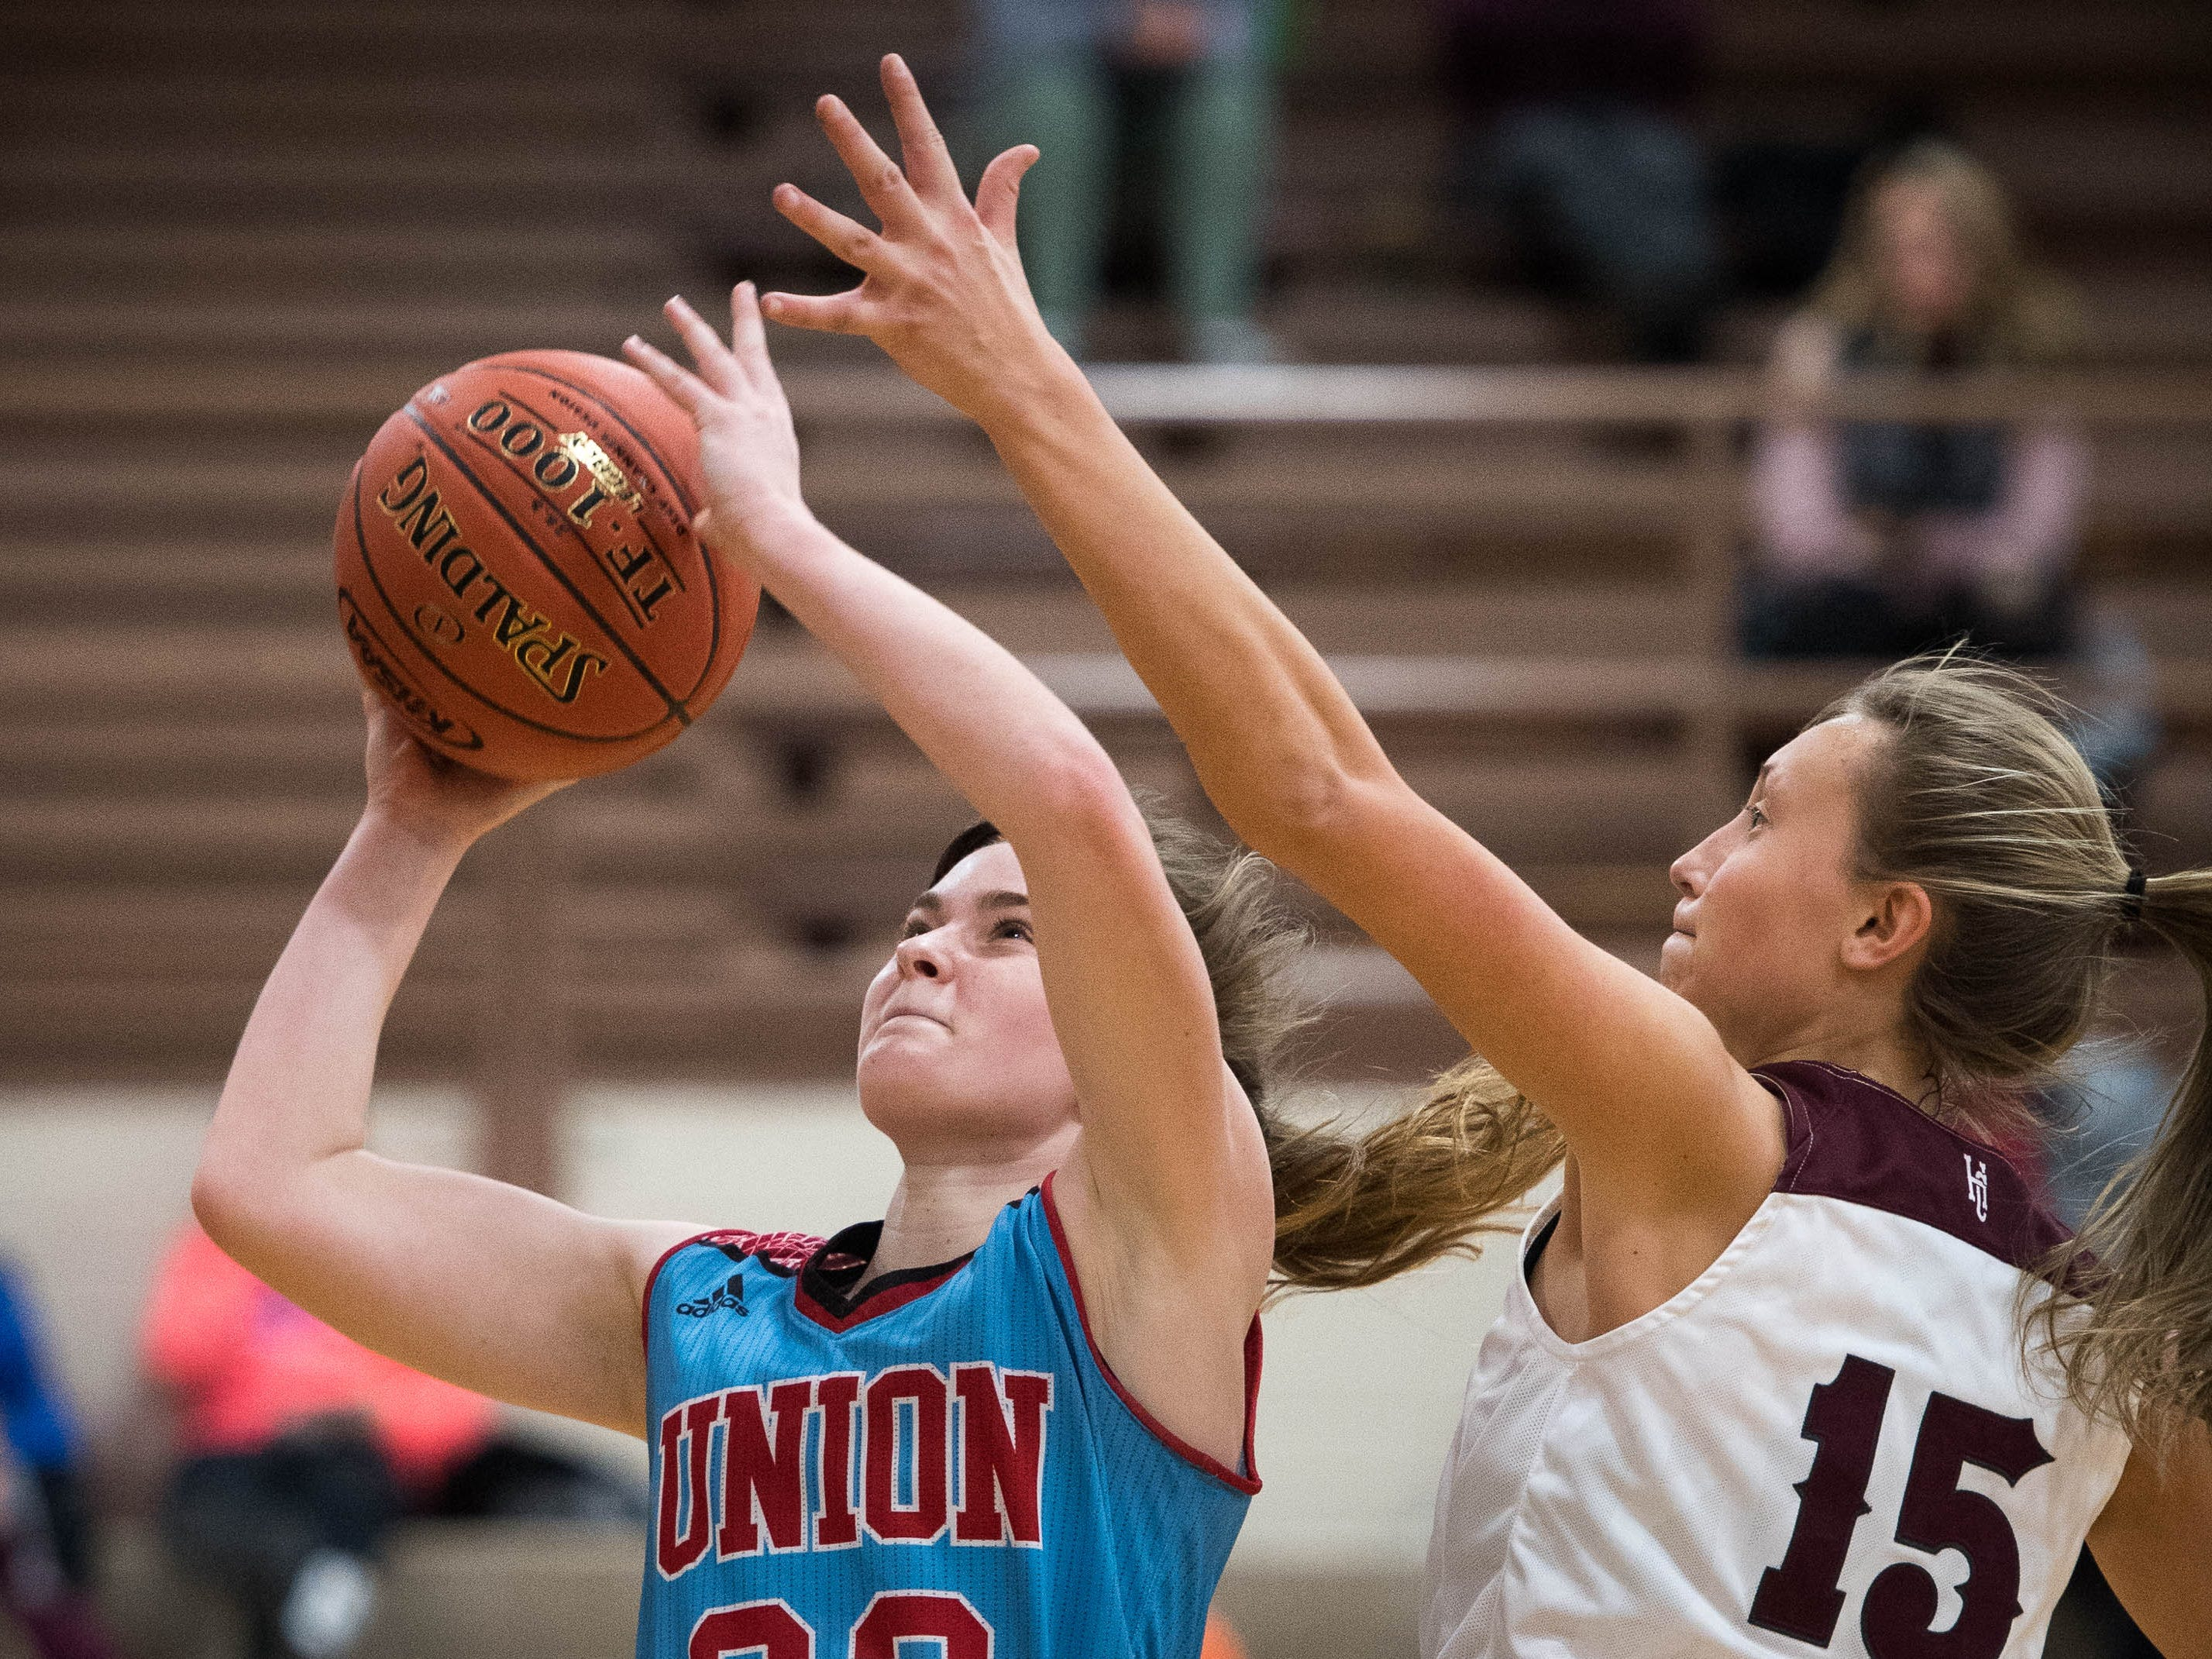 Jralee Roberson (22) shoots a layup under pressure from Henderson County's Alyssa Dickson (15) as district rivals Union County Bravettes play the Henderson County Lady Colonels at Colonel Gym in Henderson Tuesday, January 29, 2019.